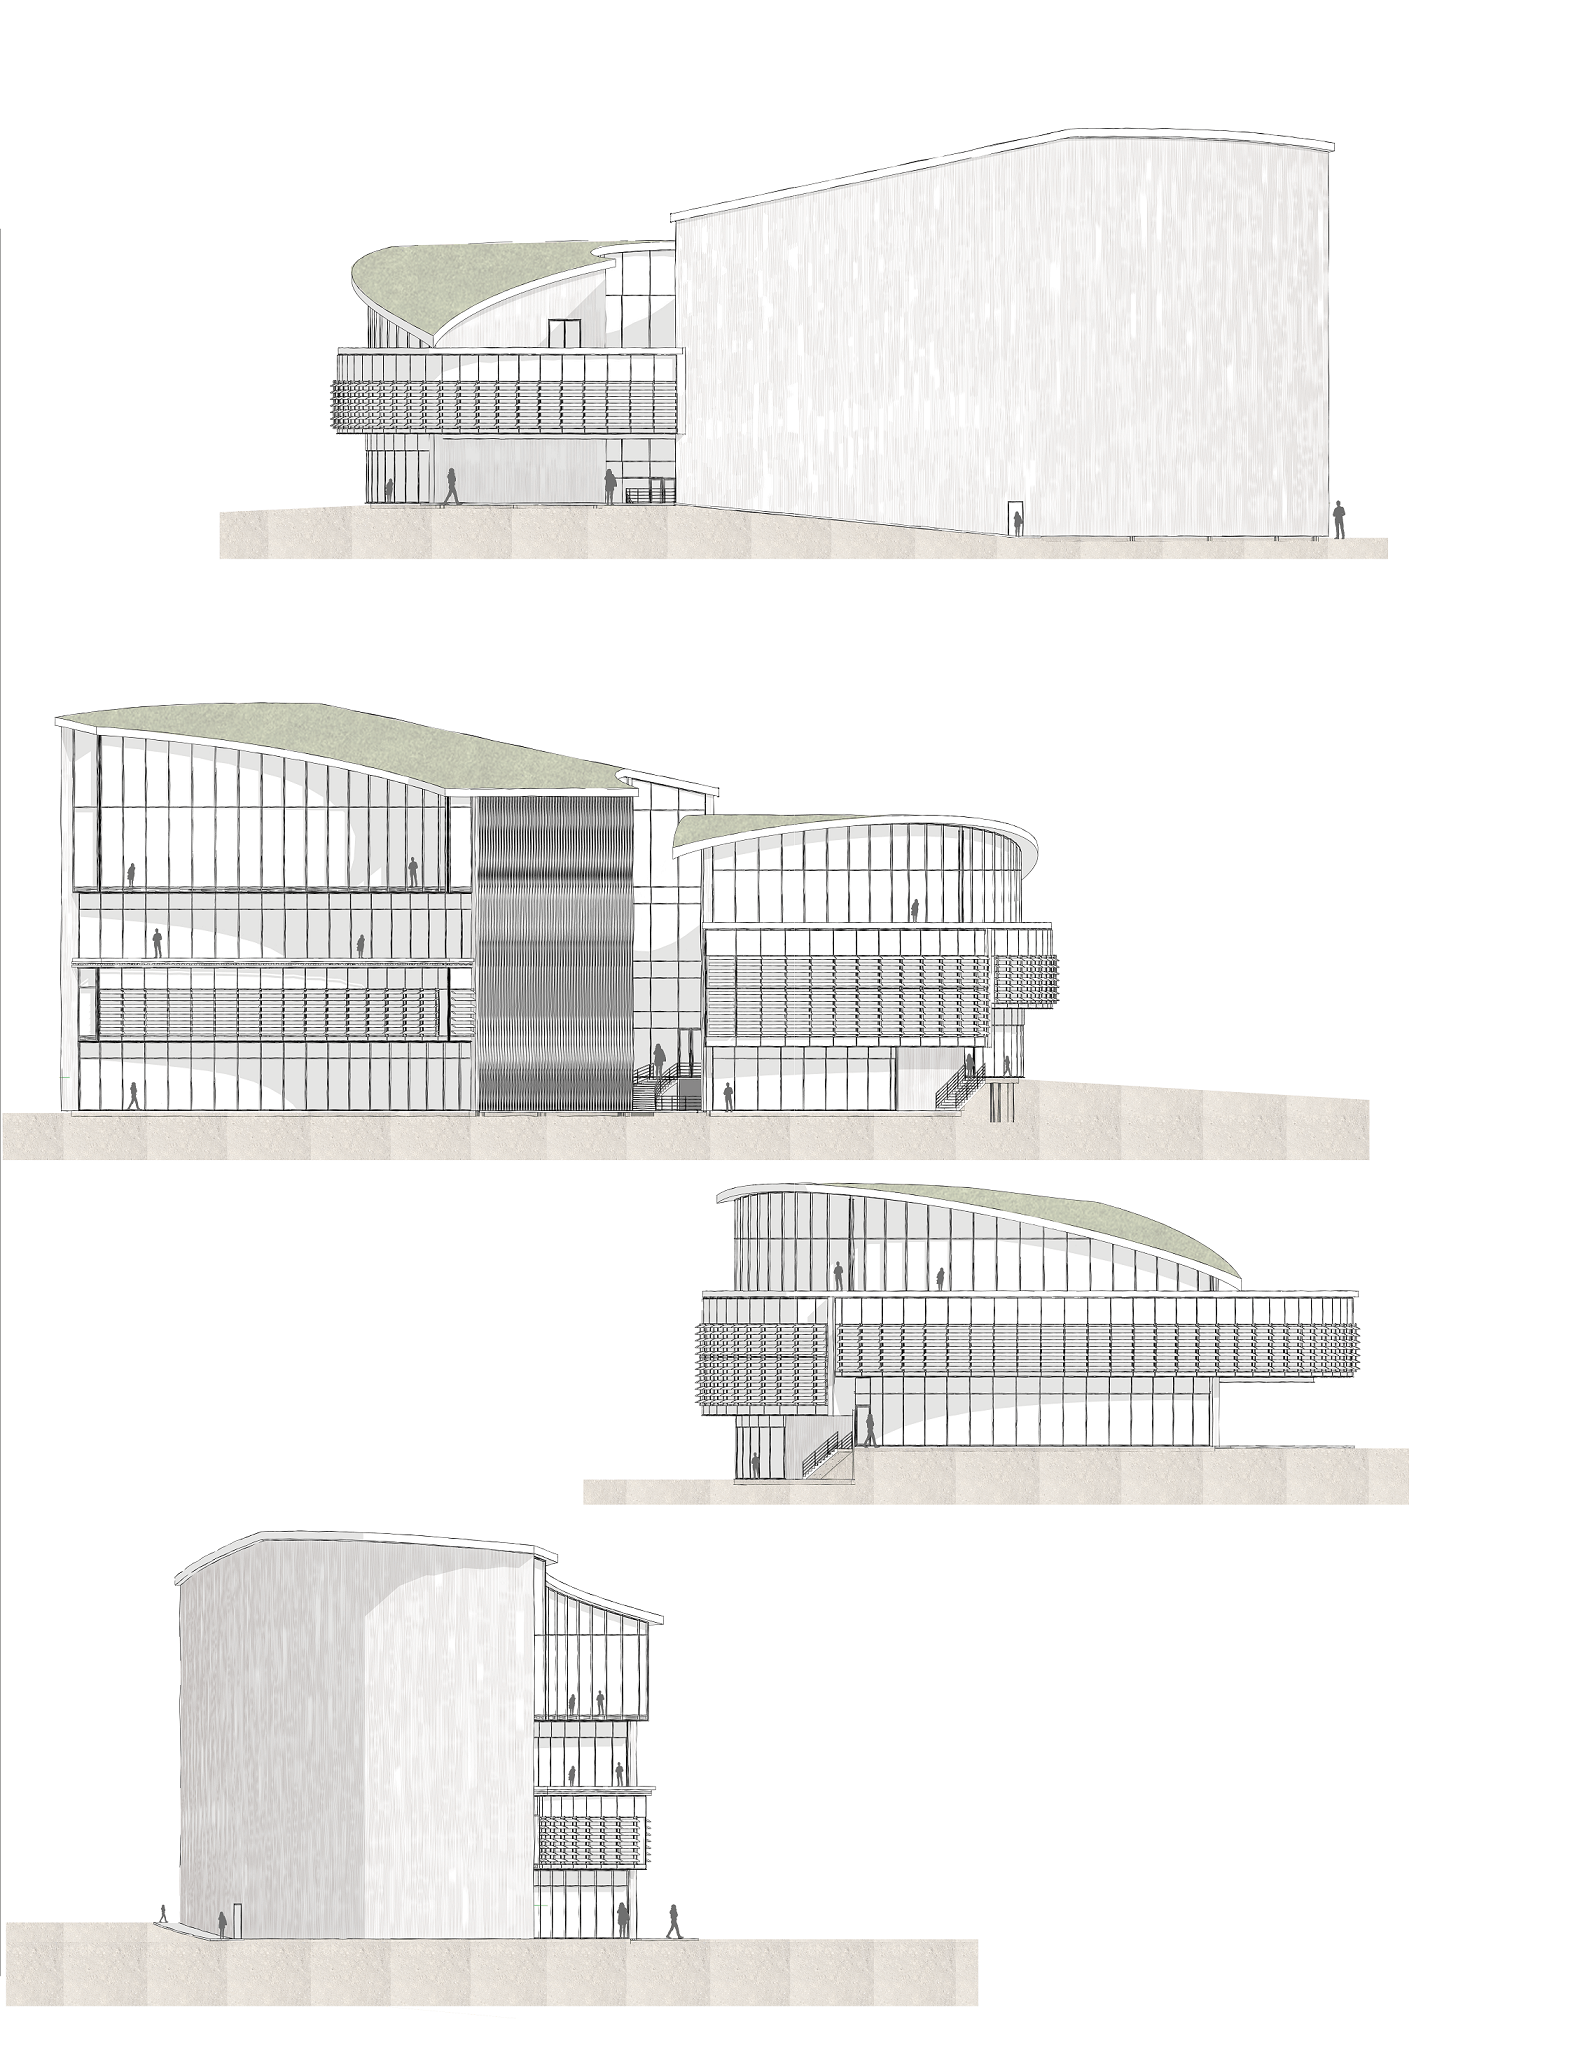 Culinary School Phase 3 Elevations